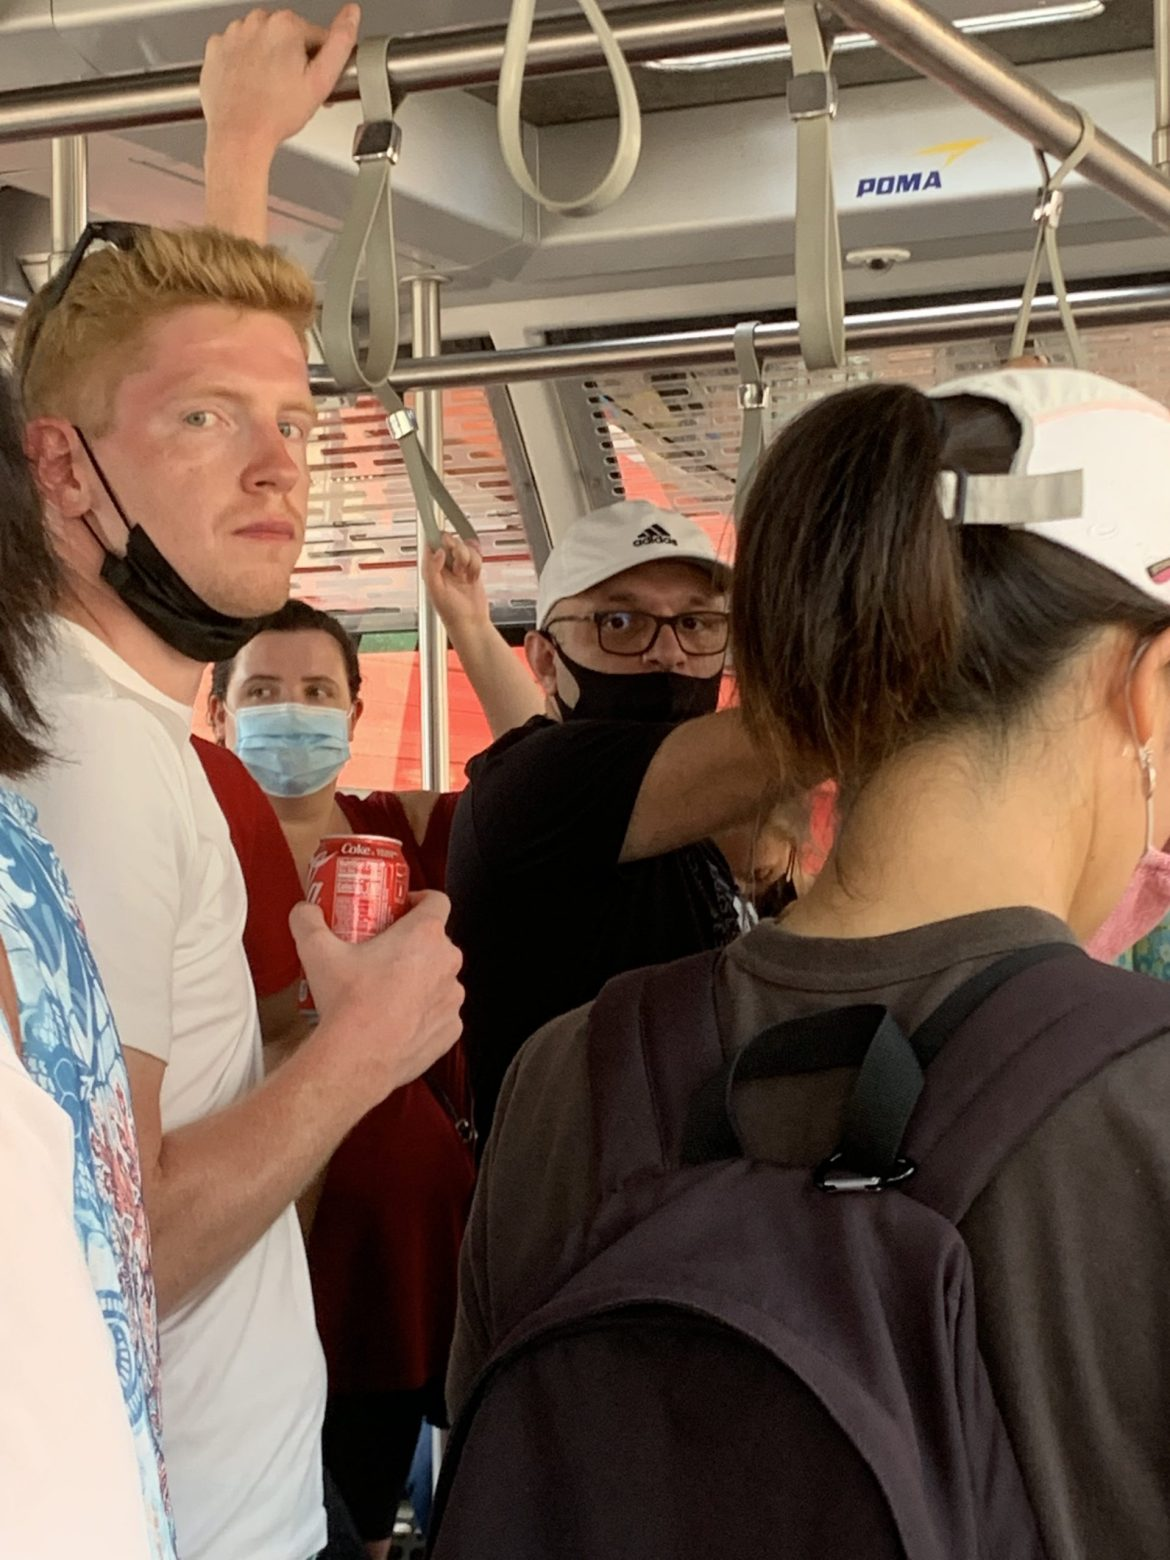 Why are maskless riders still welcome on the Tram and Red Buses?